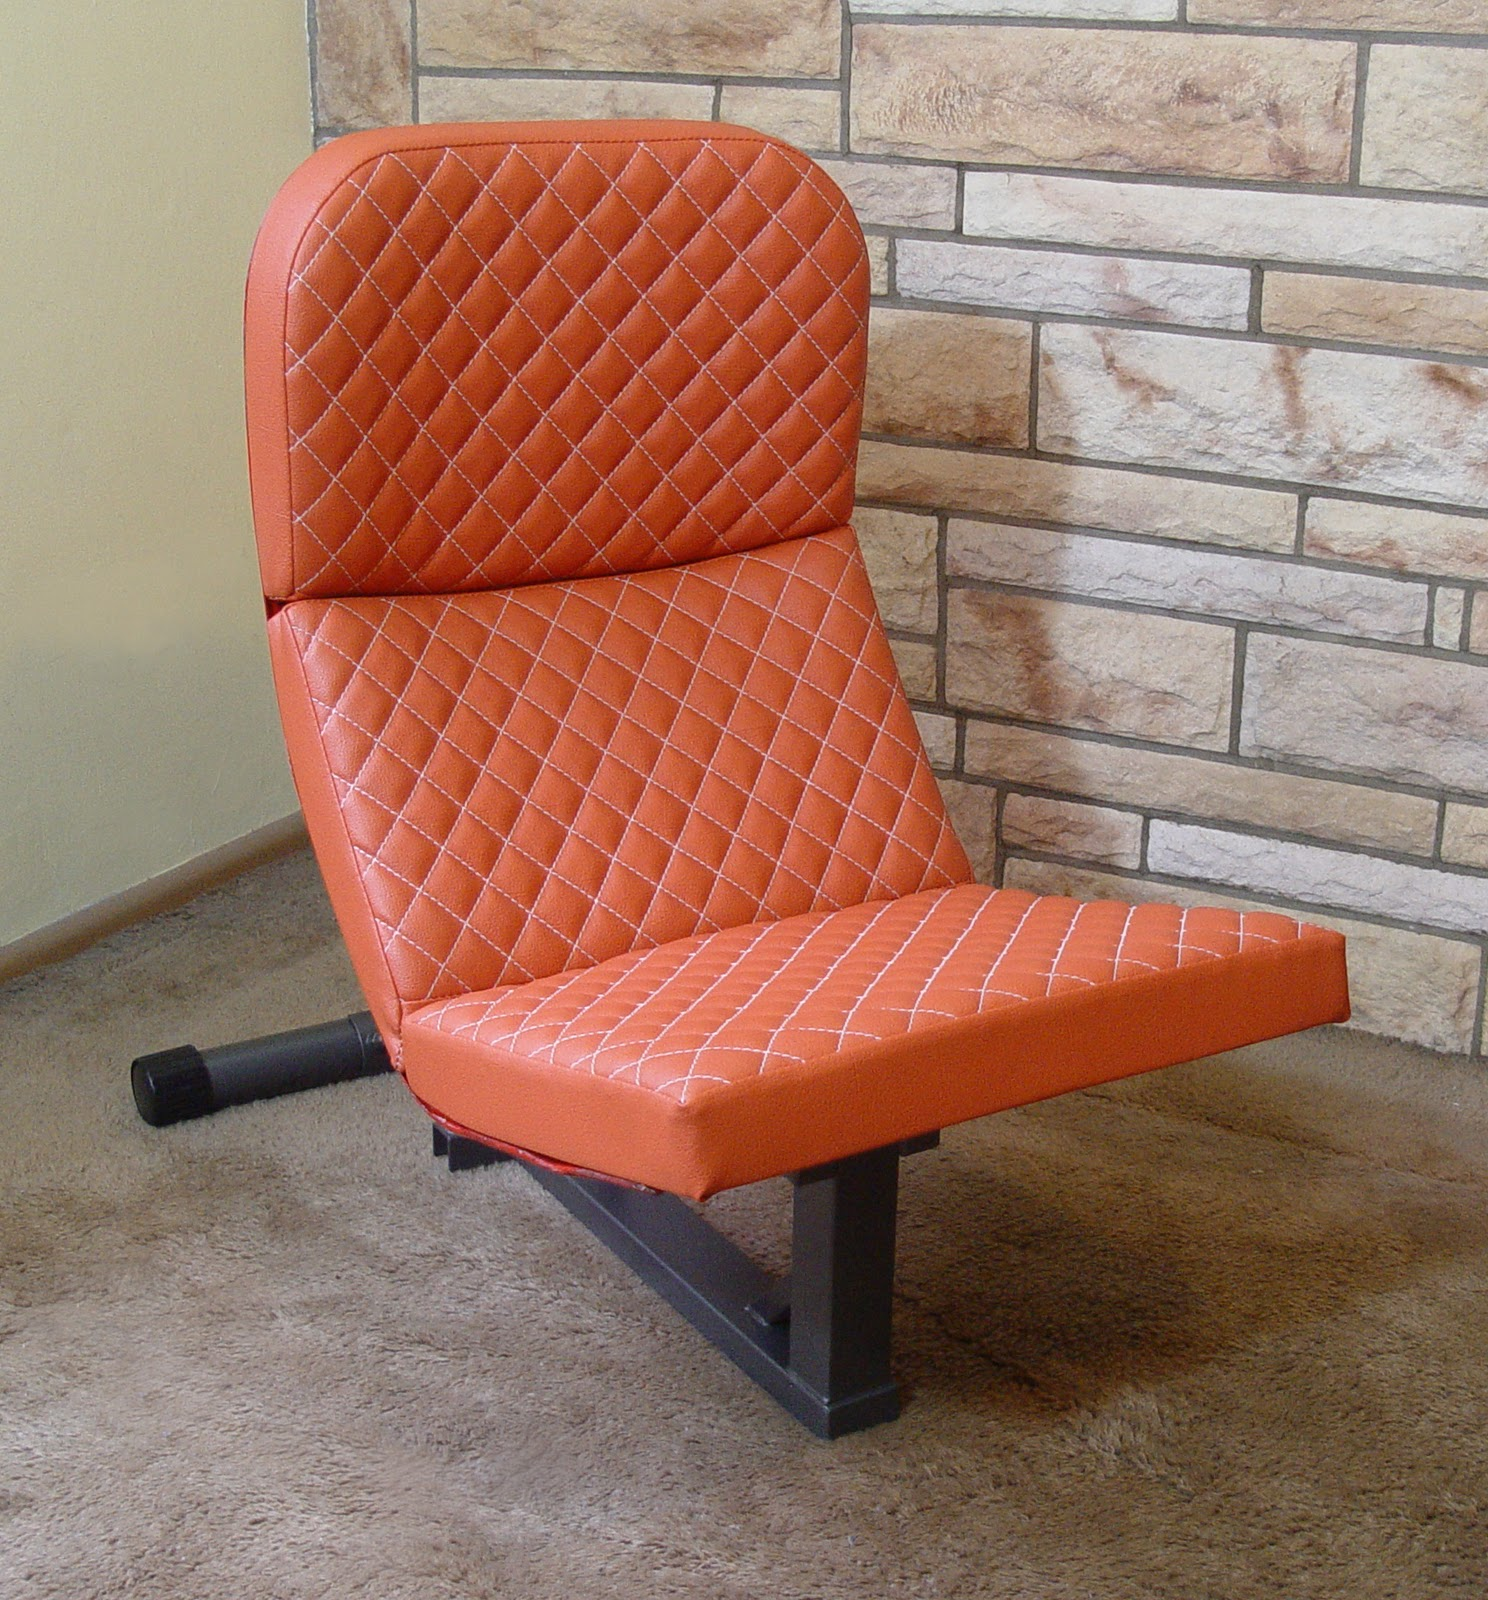 recycled vespa office chairs. AFTER: Lounge Chair. Recycled Vespa Office Chairs